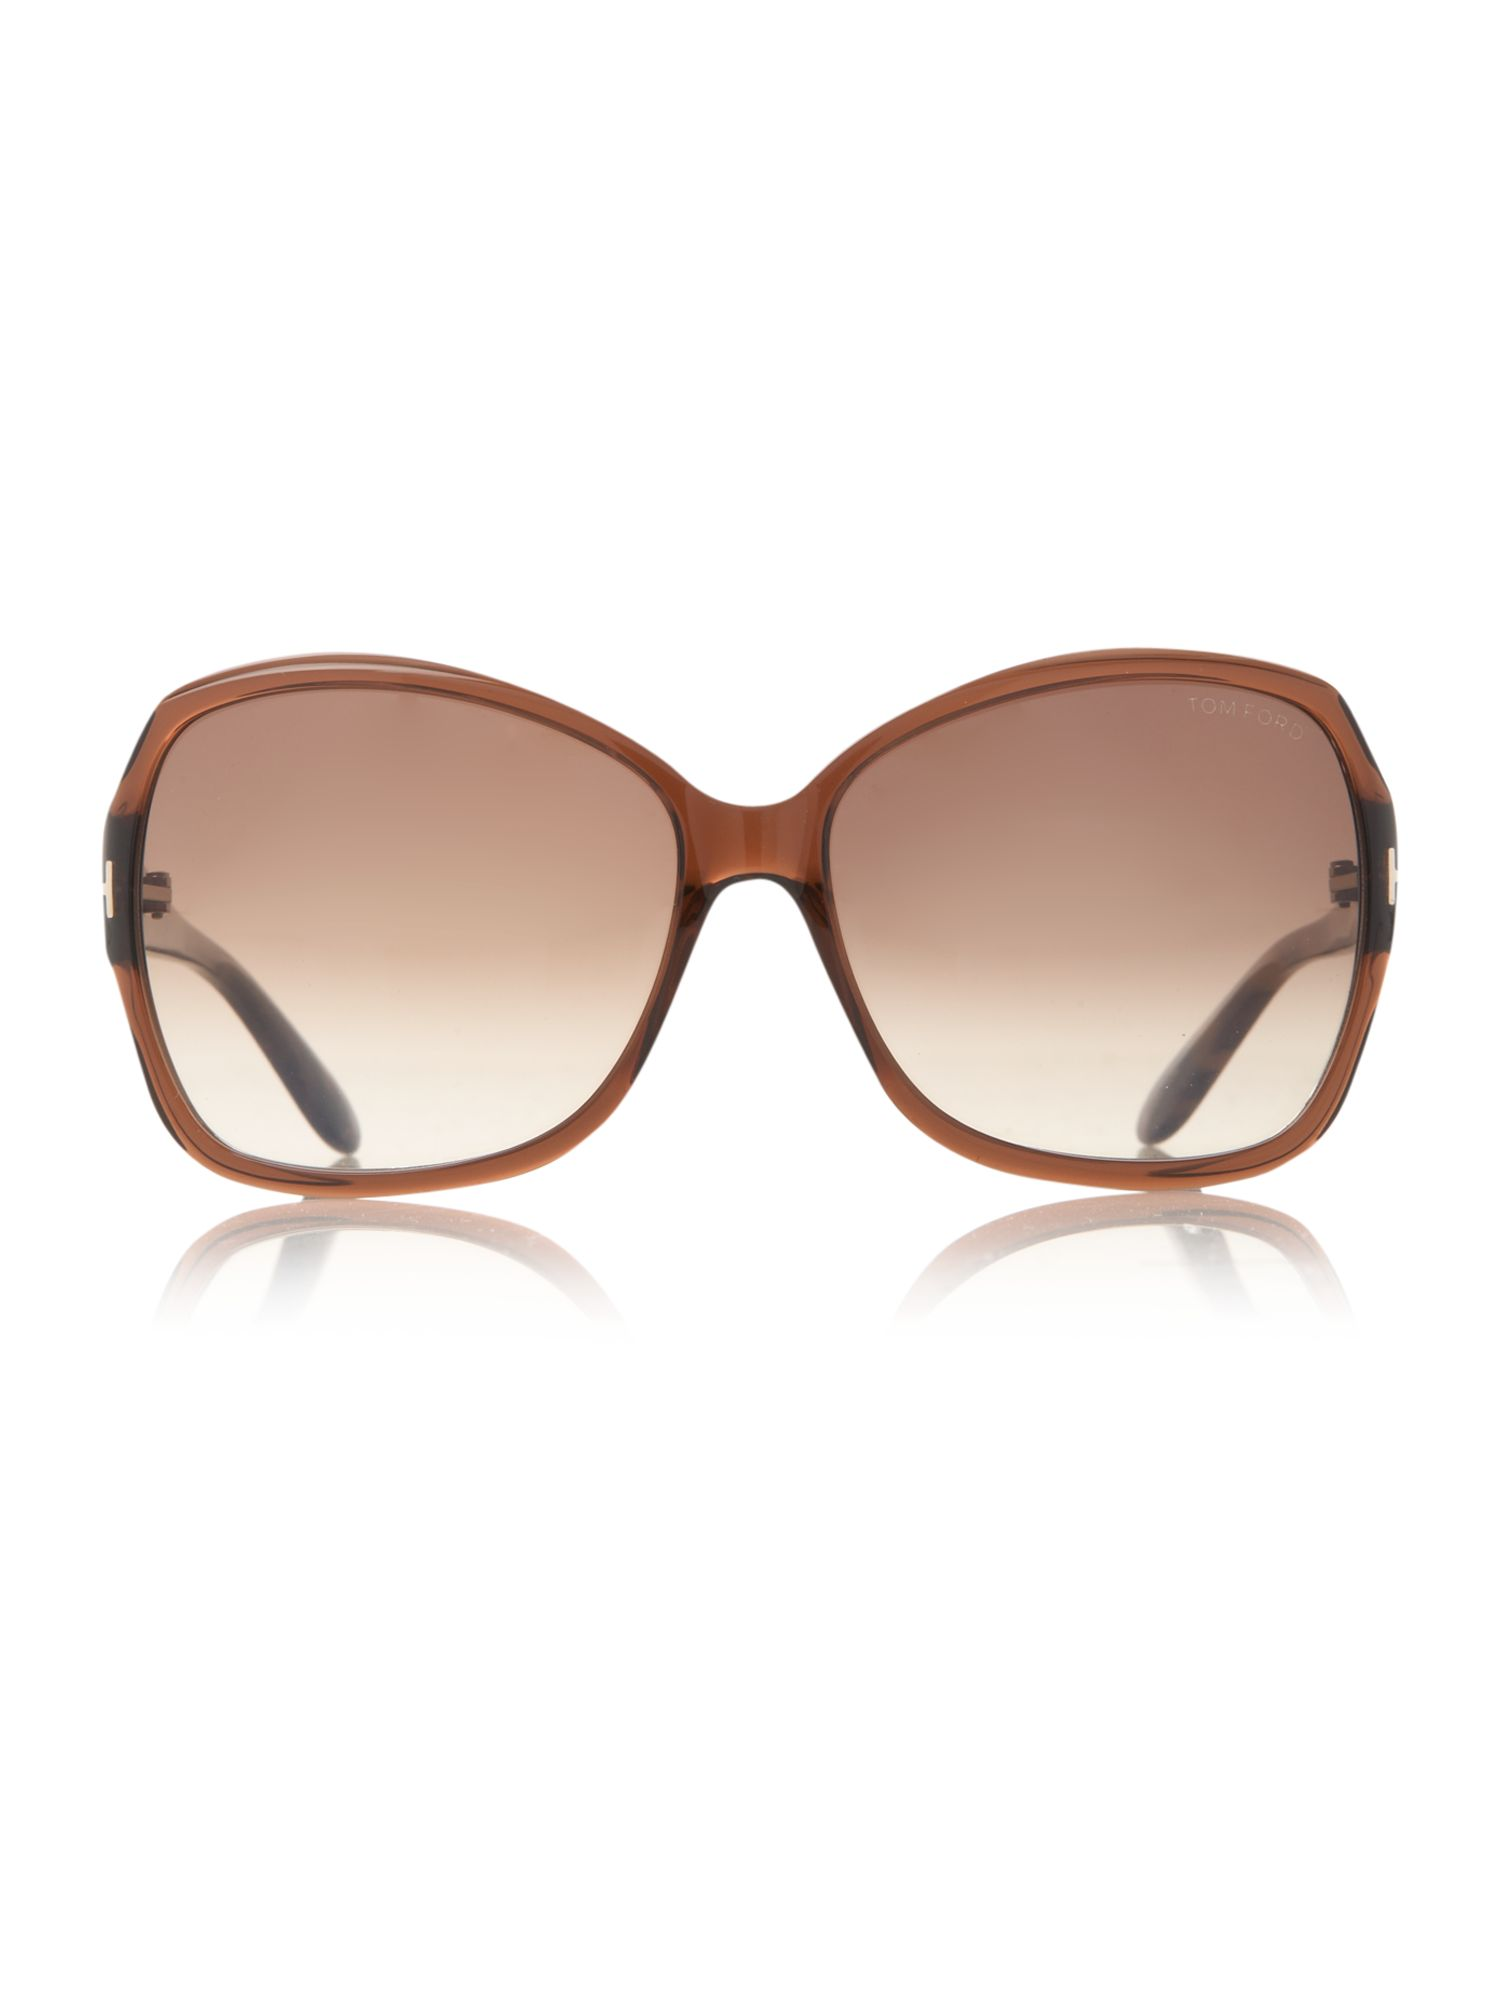 Ladies FT0229 Nicola Sunglasses